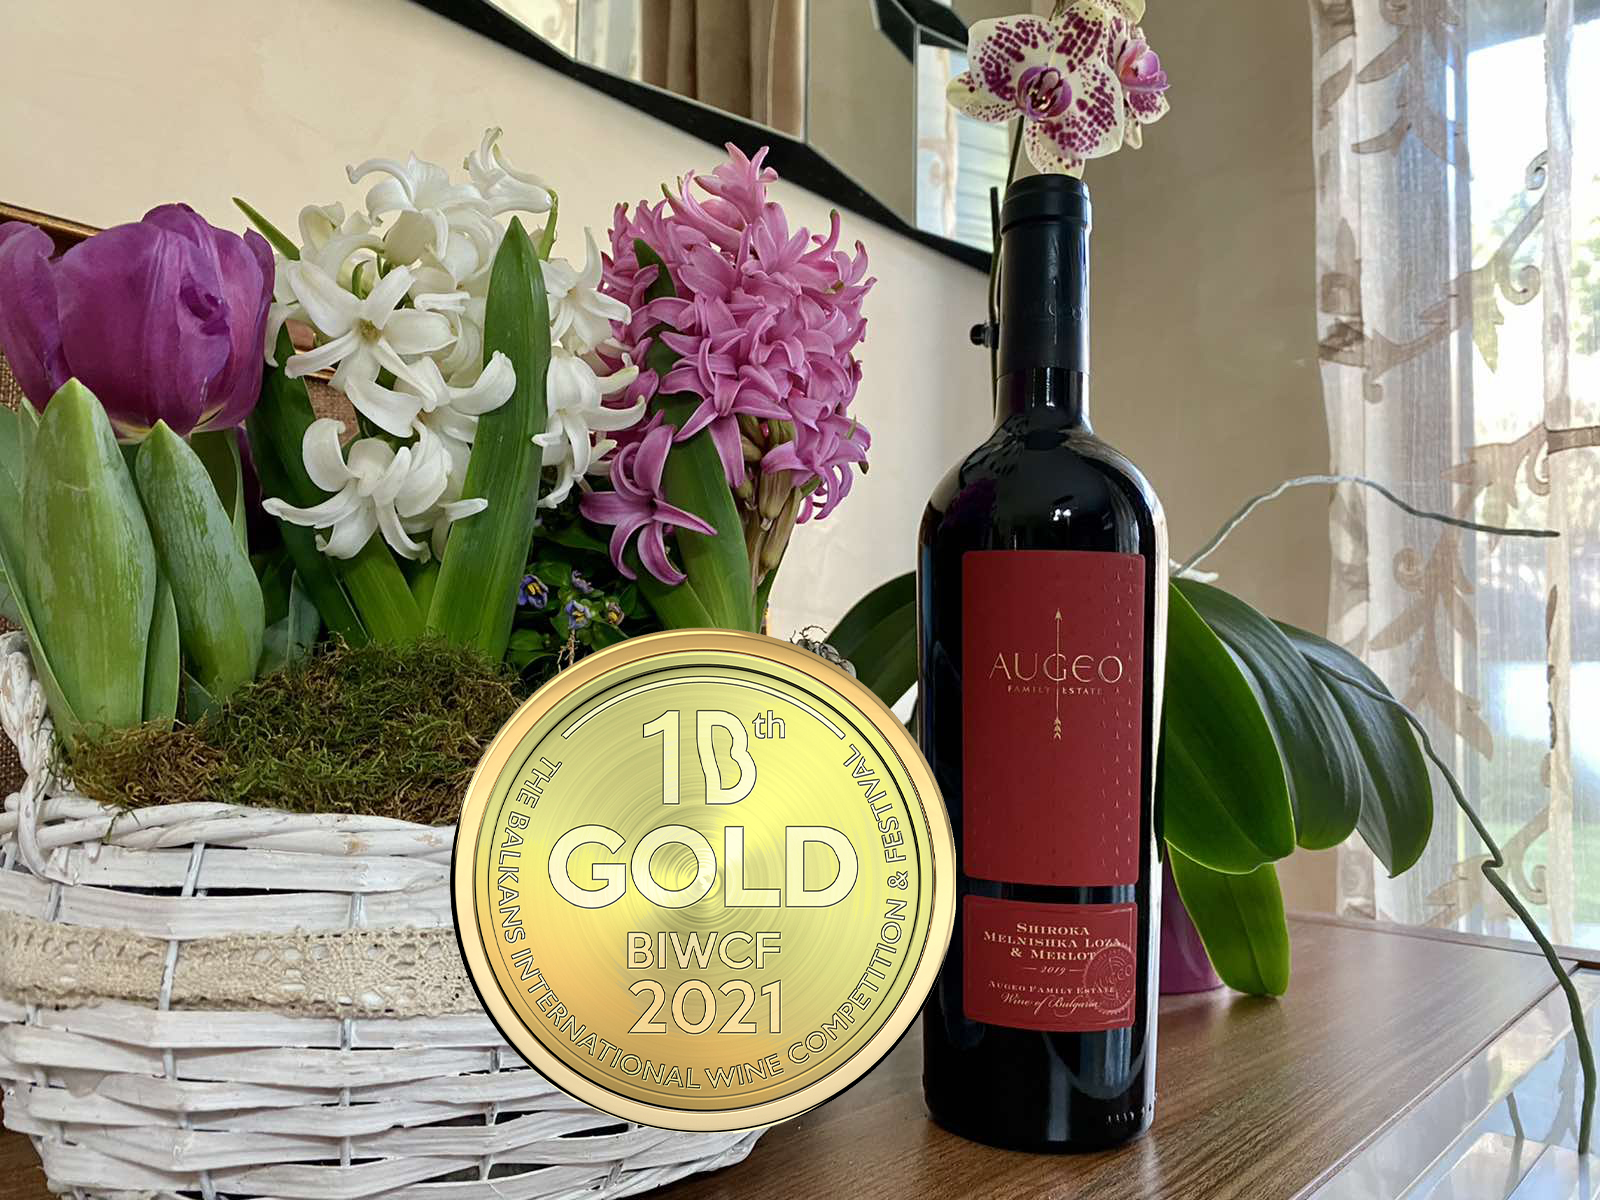 Augeo ShML won a gold medal at The Balkans International Wine Competition 2021